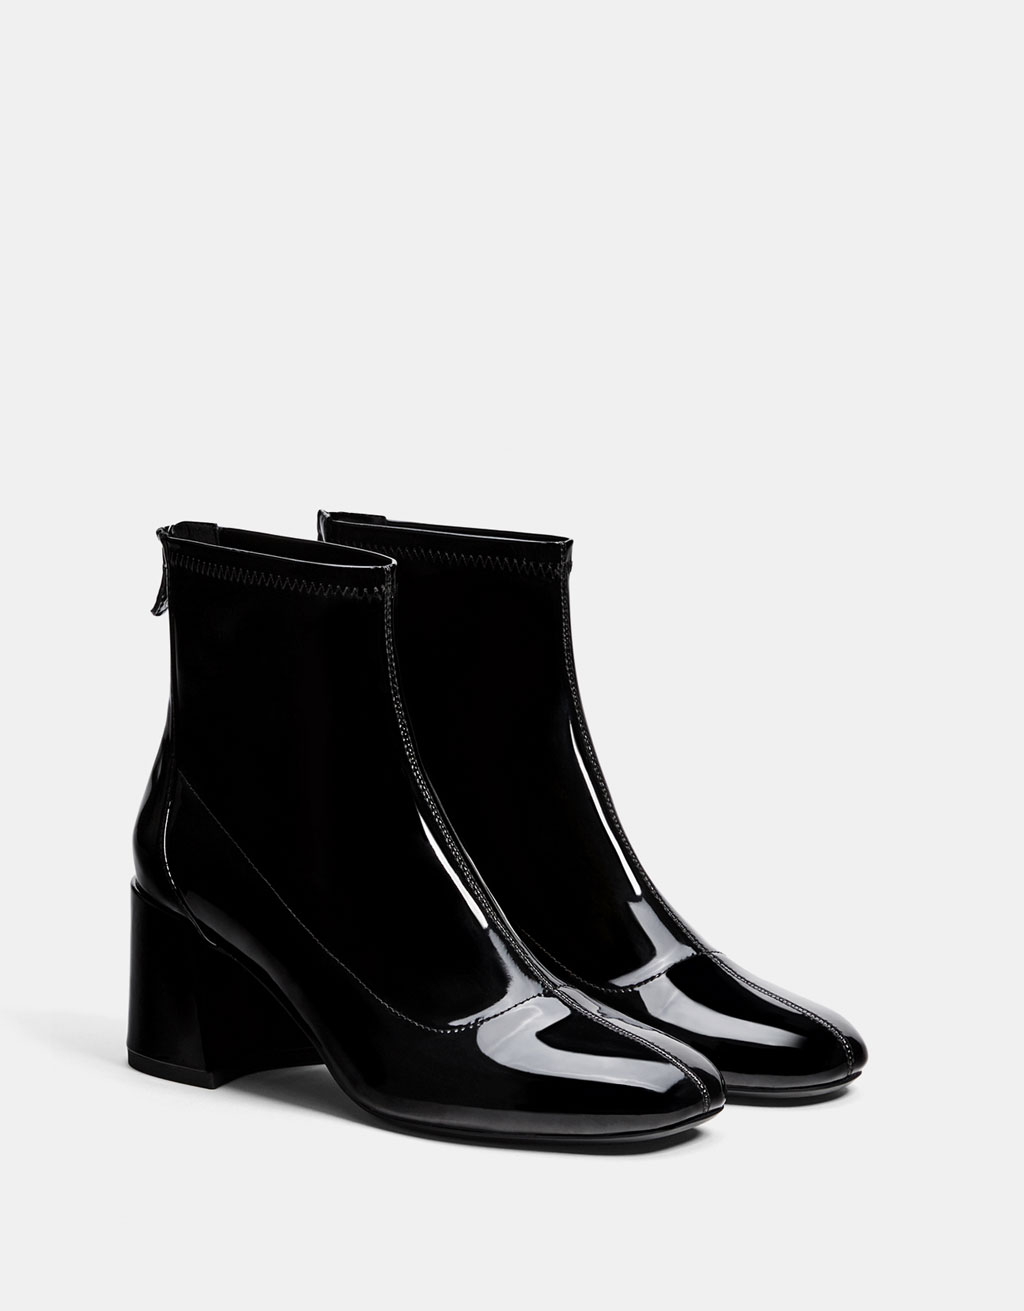 Mid-heel ankle boots with a patent finish